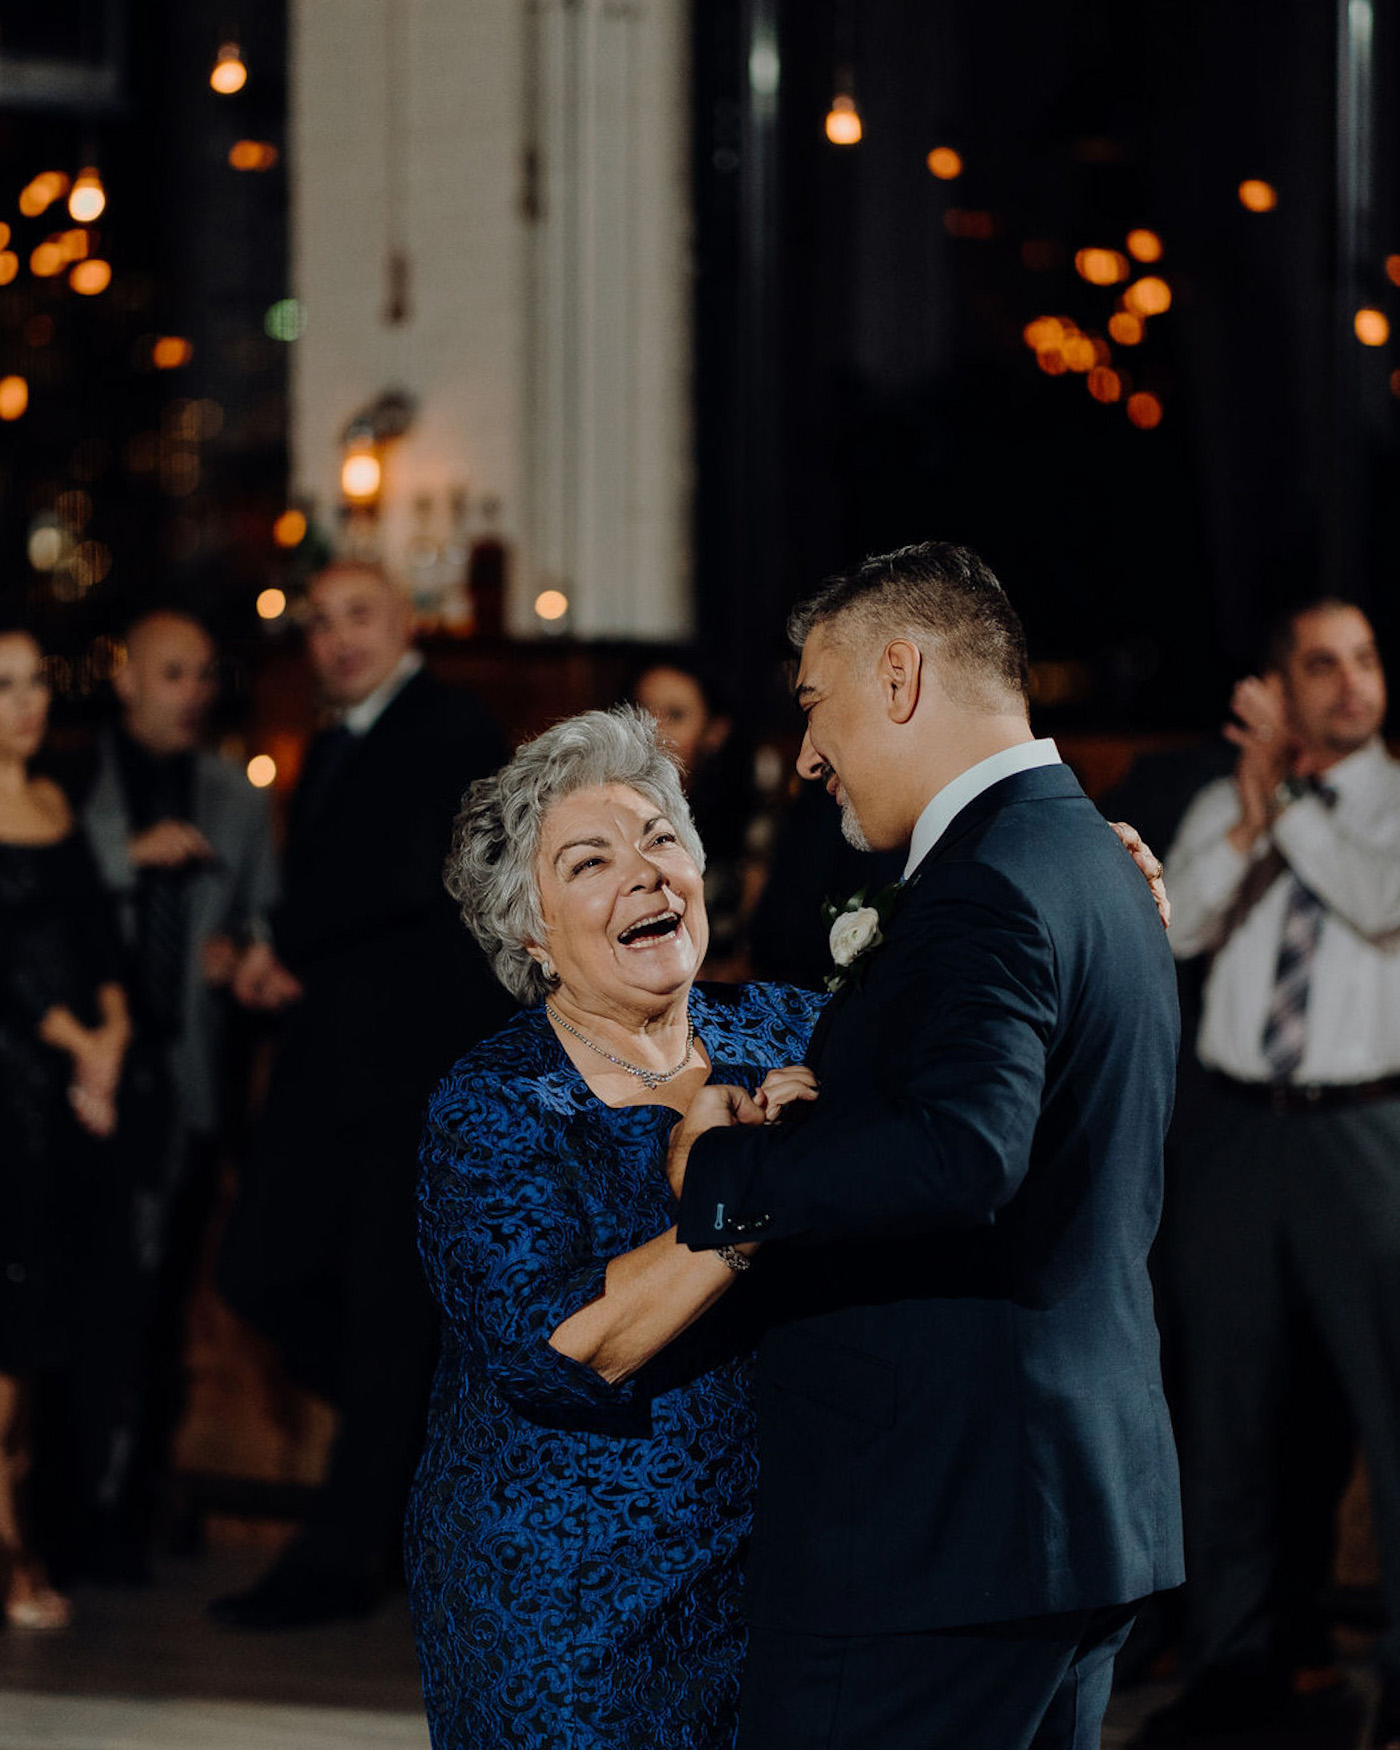 mother son wedding dance smiling